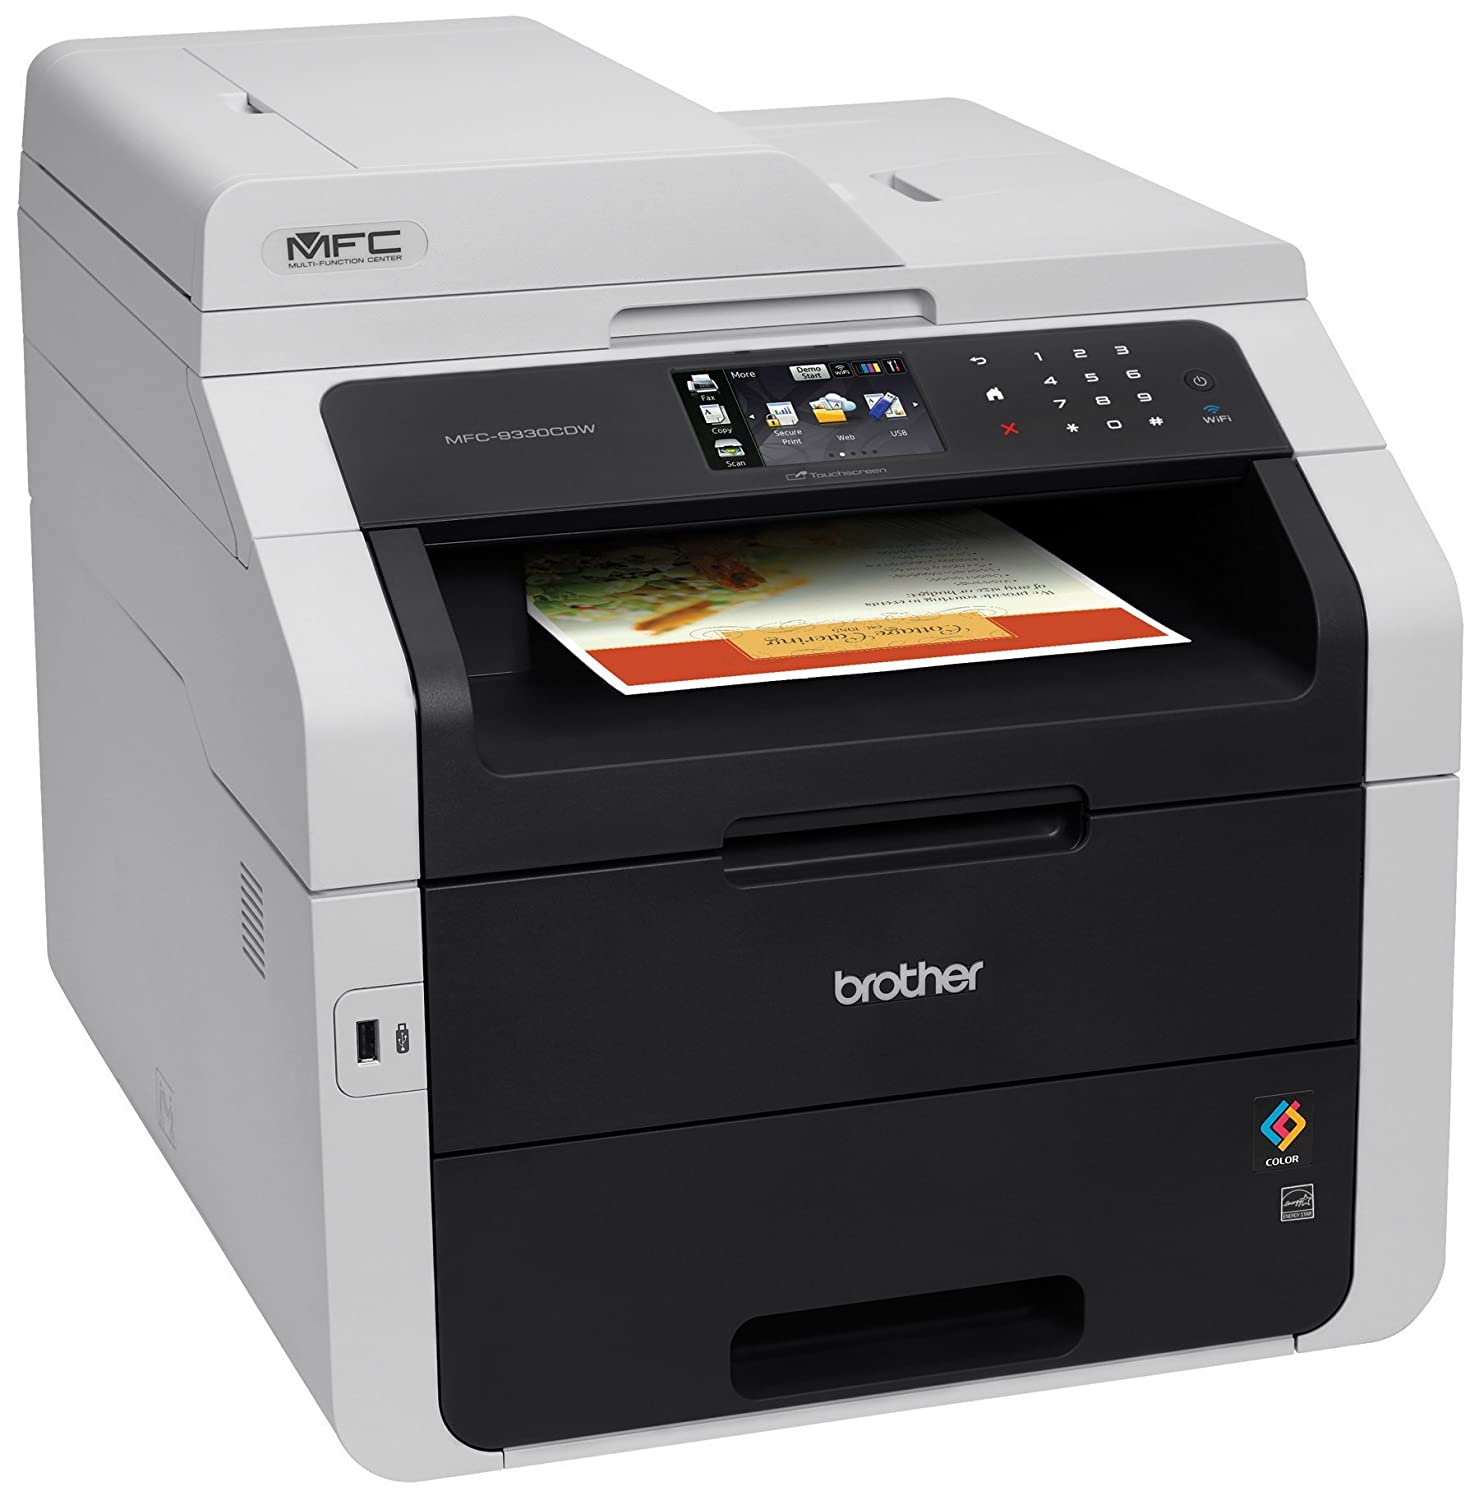 printers en in one printer canada pixma ip walmart deskjet all inkjet office depot canon hp